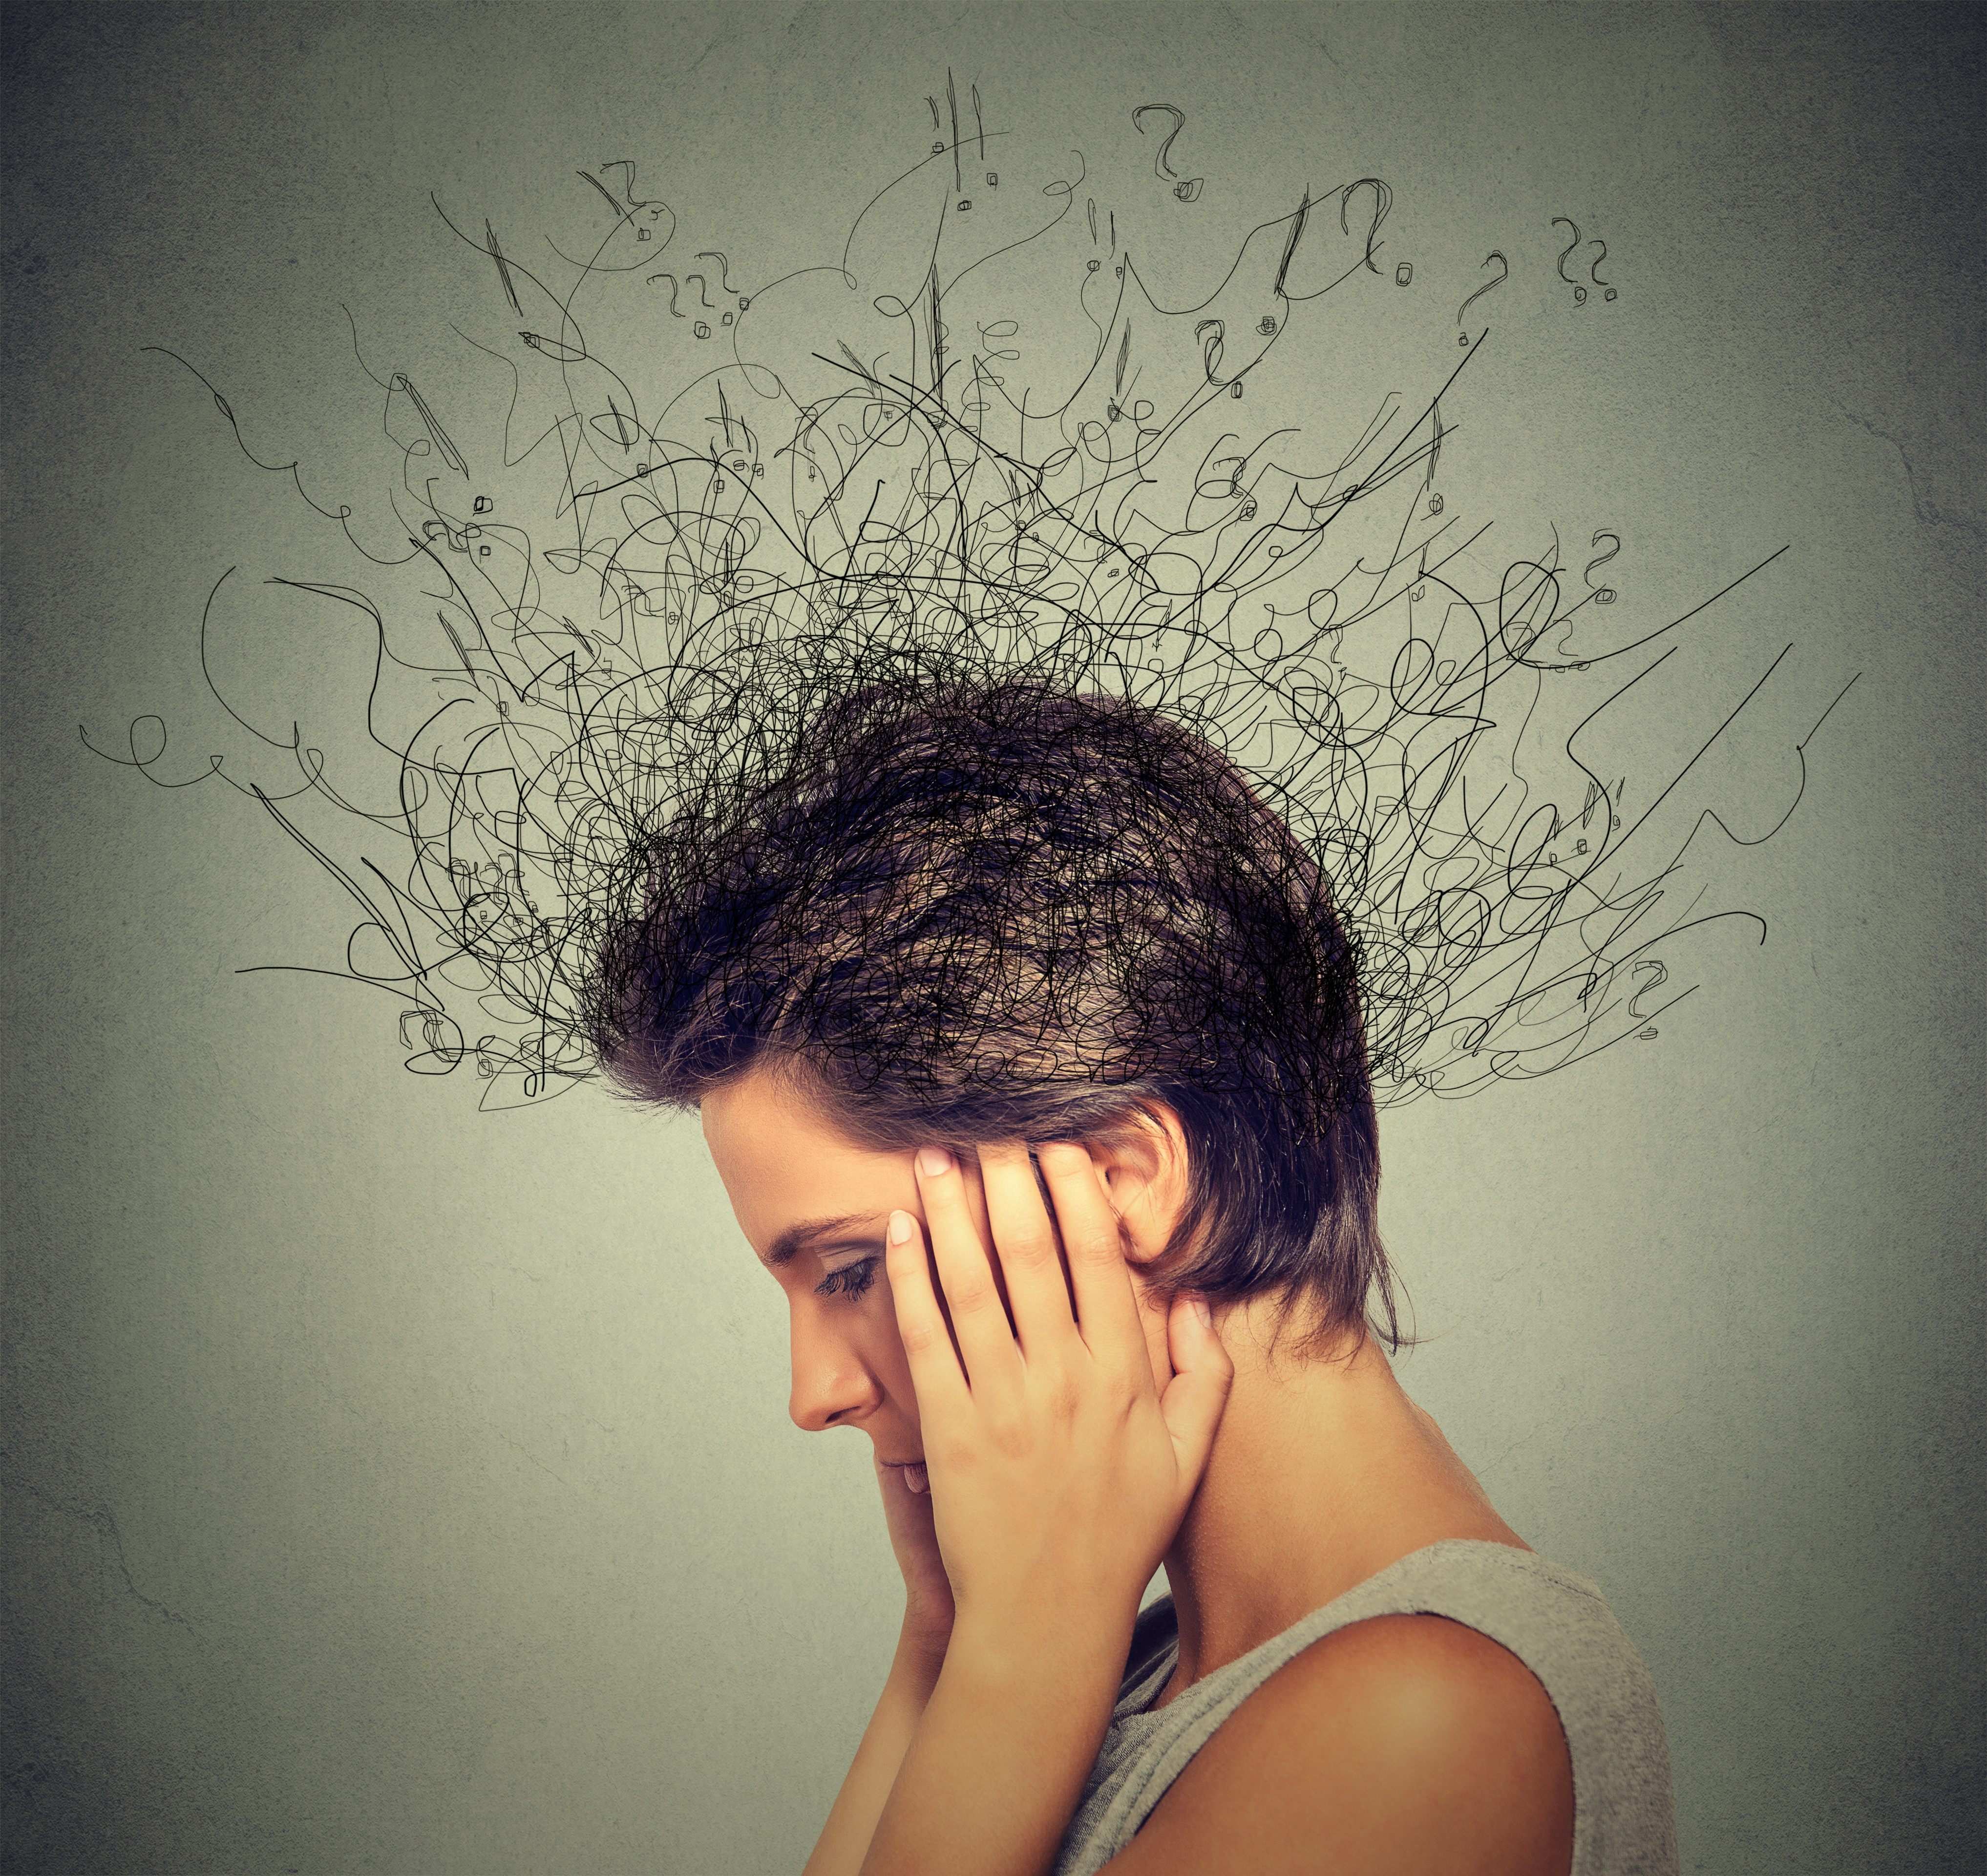 Stopping Anxious Thoughts image